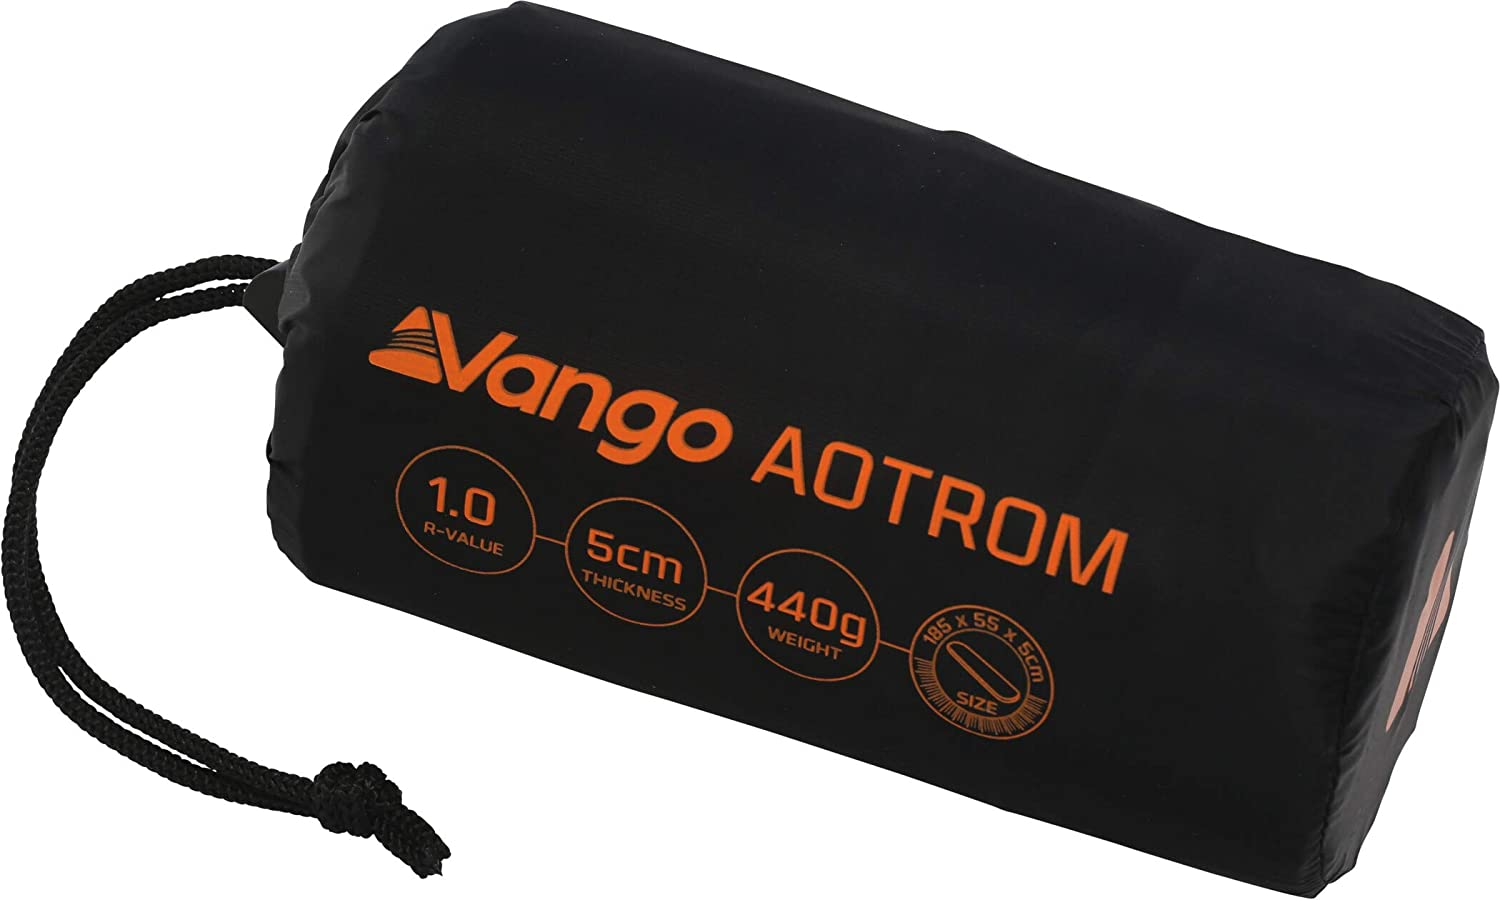 Vango Aotrom 5 cm Trek Single Sleeping Mat Antracita Negro